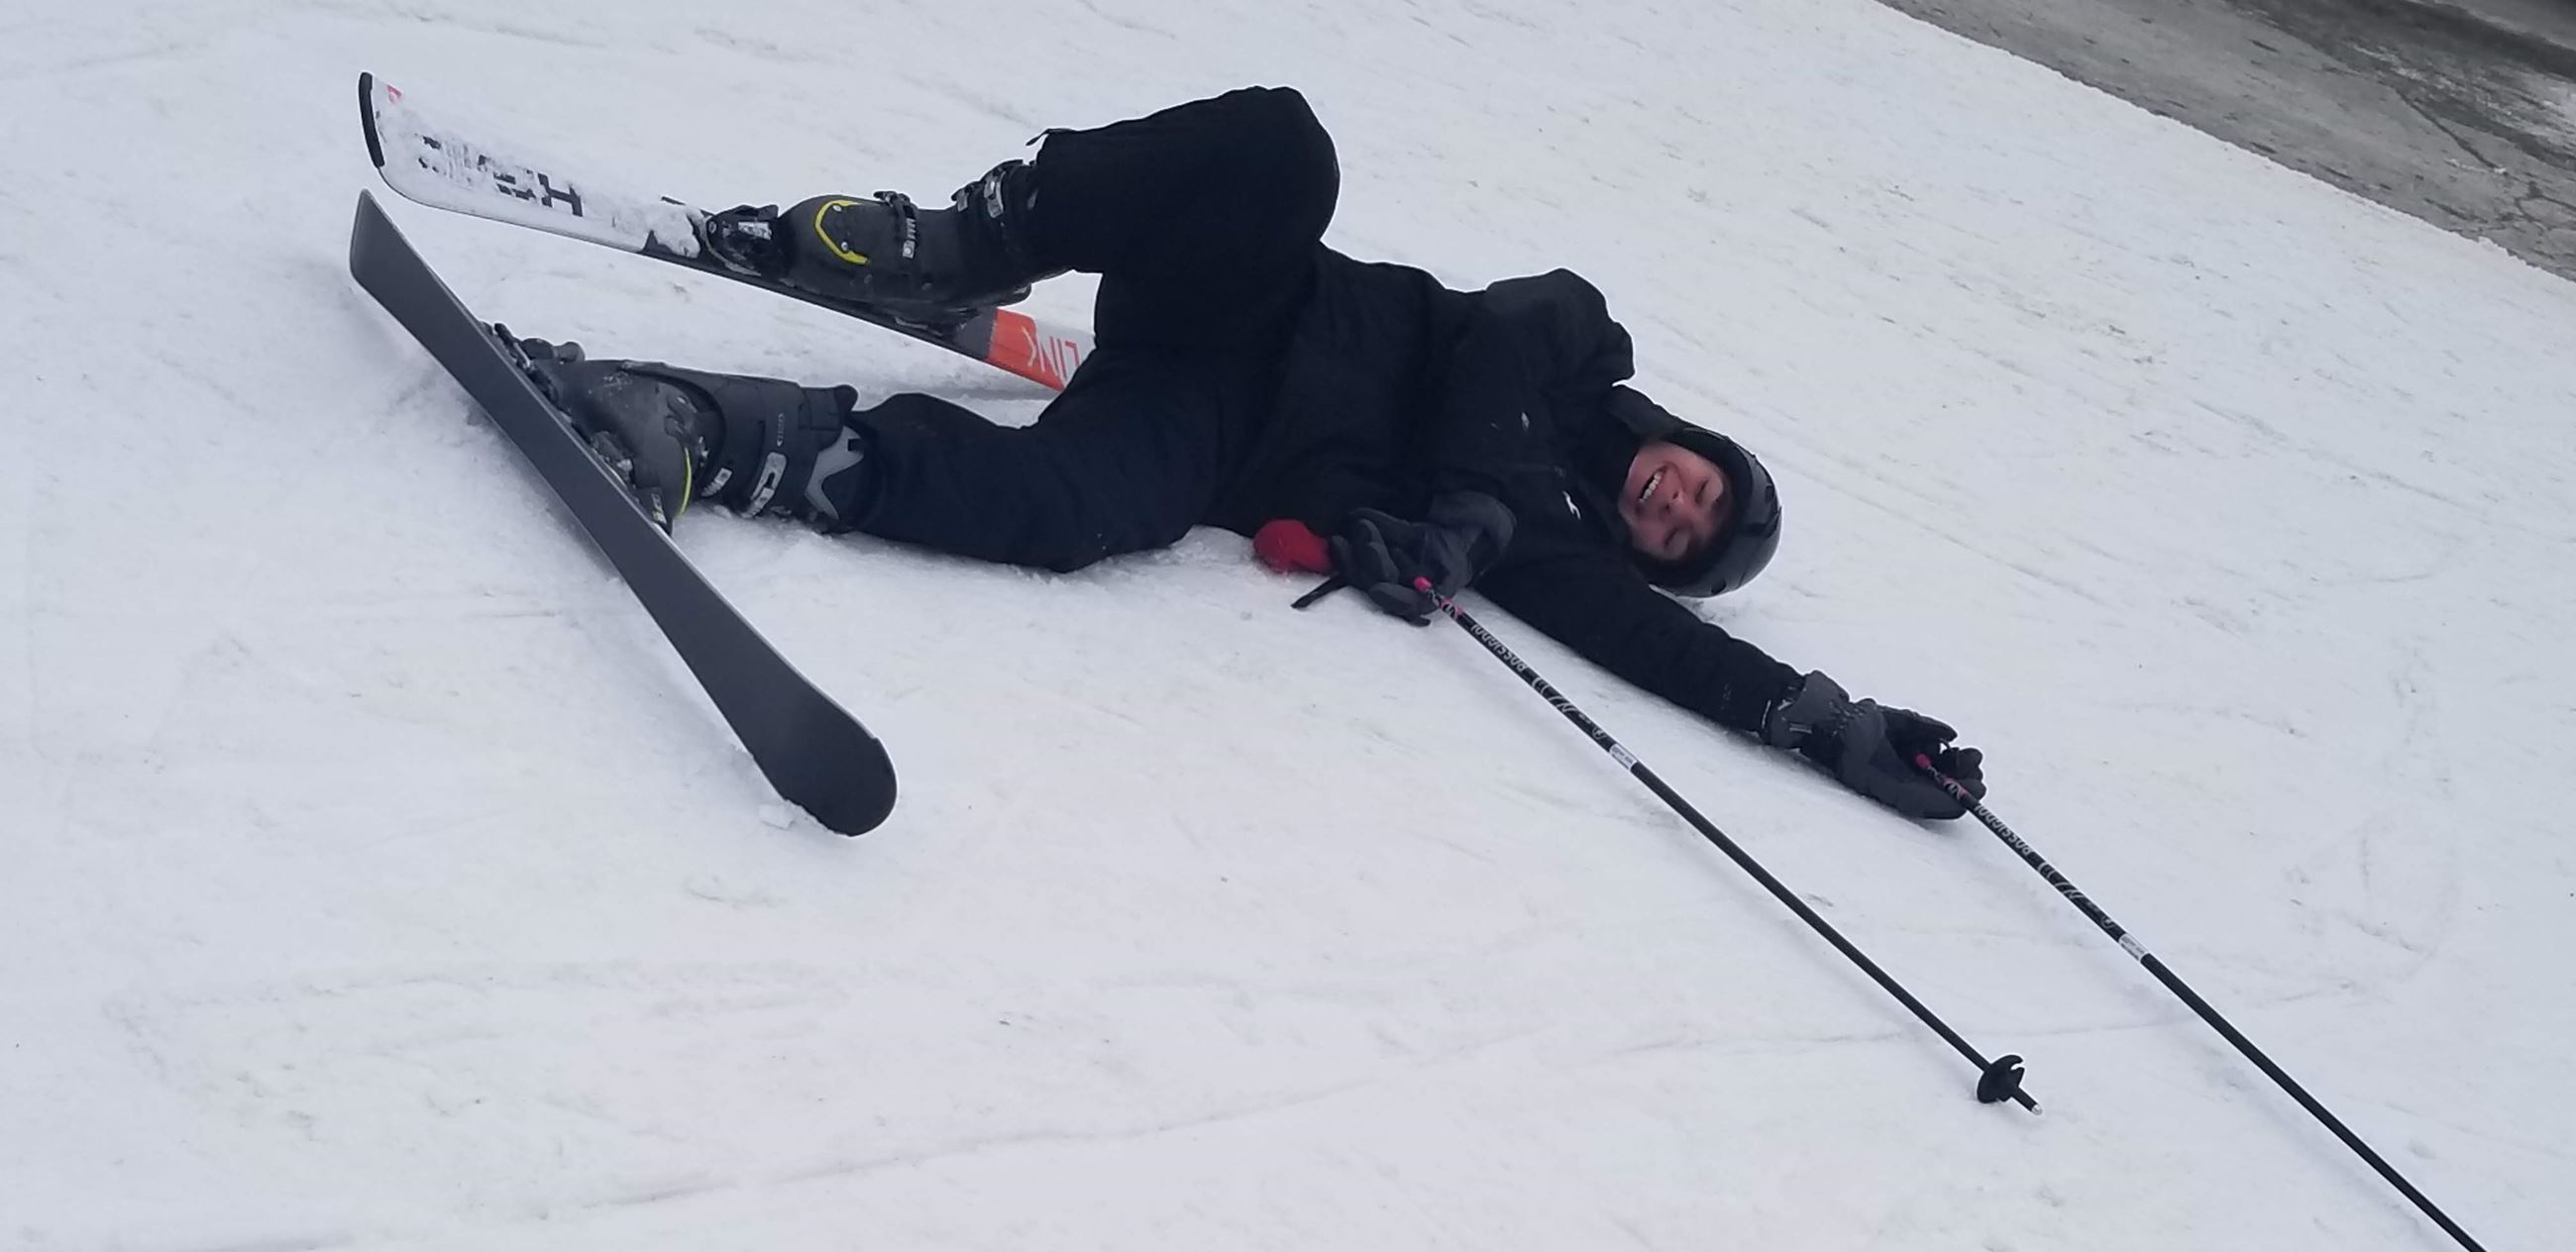 Wipe out on the ski slope